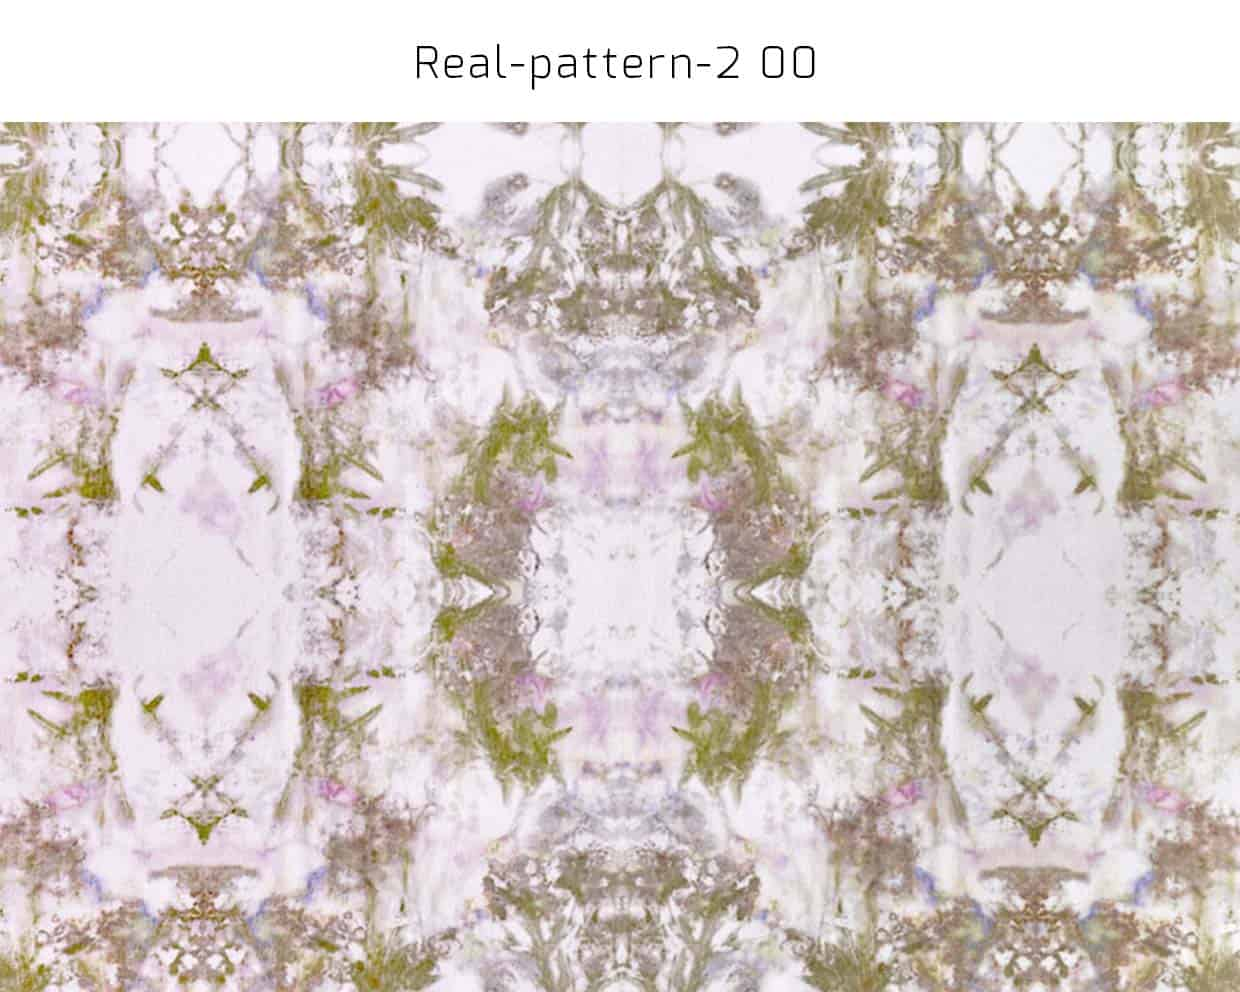 Real pattern 2